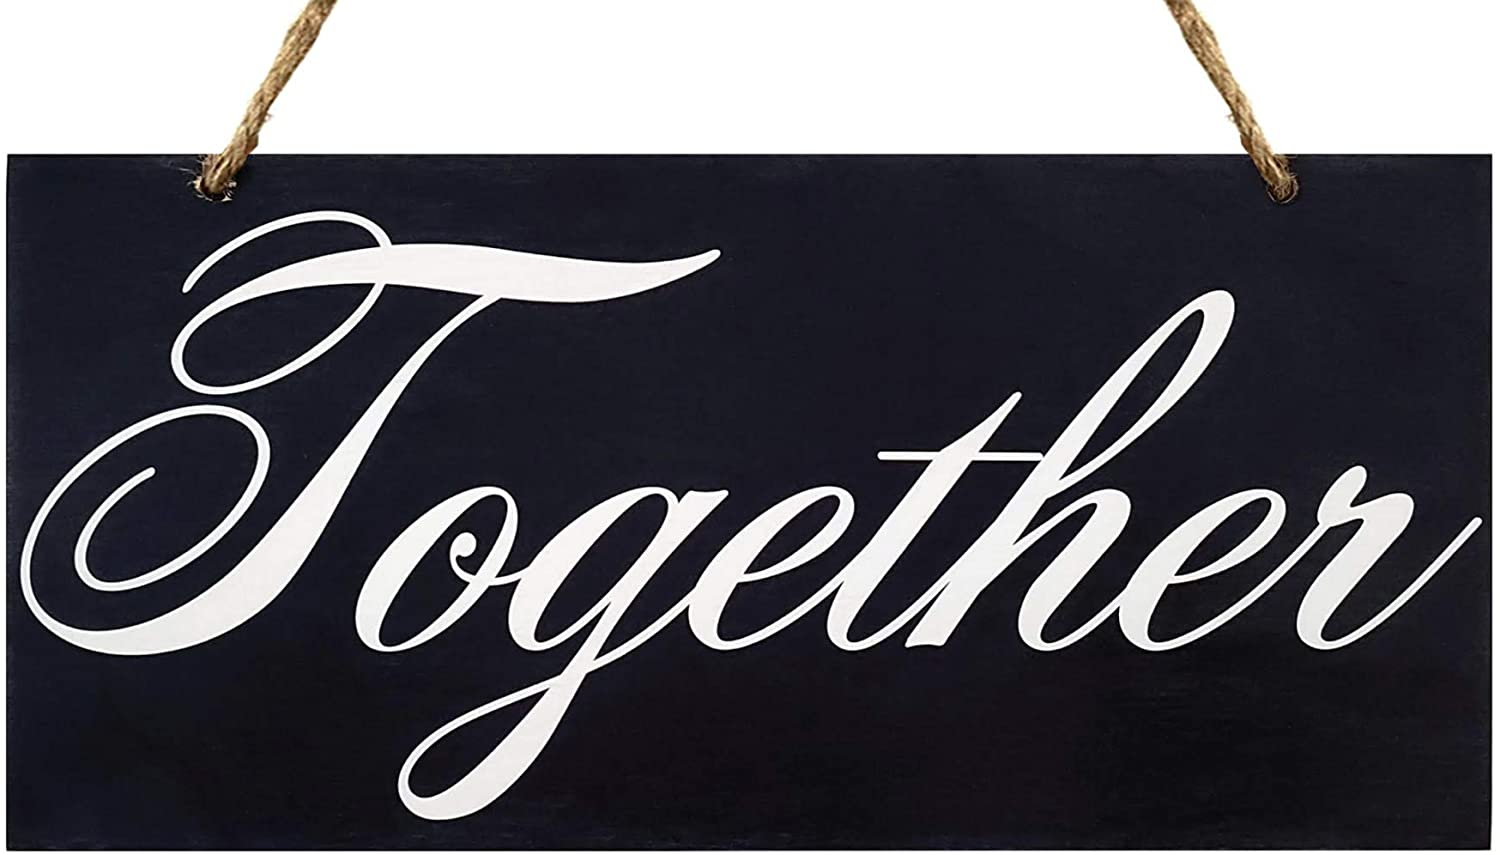 JennyGems | Together | Wood Script Sign | Scripted Word Art | Statement Piece for Interior Decorating | Home Decor and Design | Photo Shoot Prop | Inspirational Wood Signs | Made in USA - Color: Black